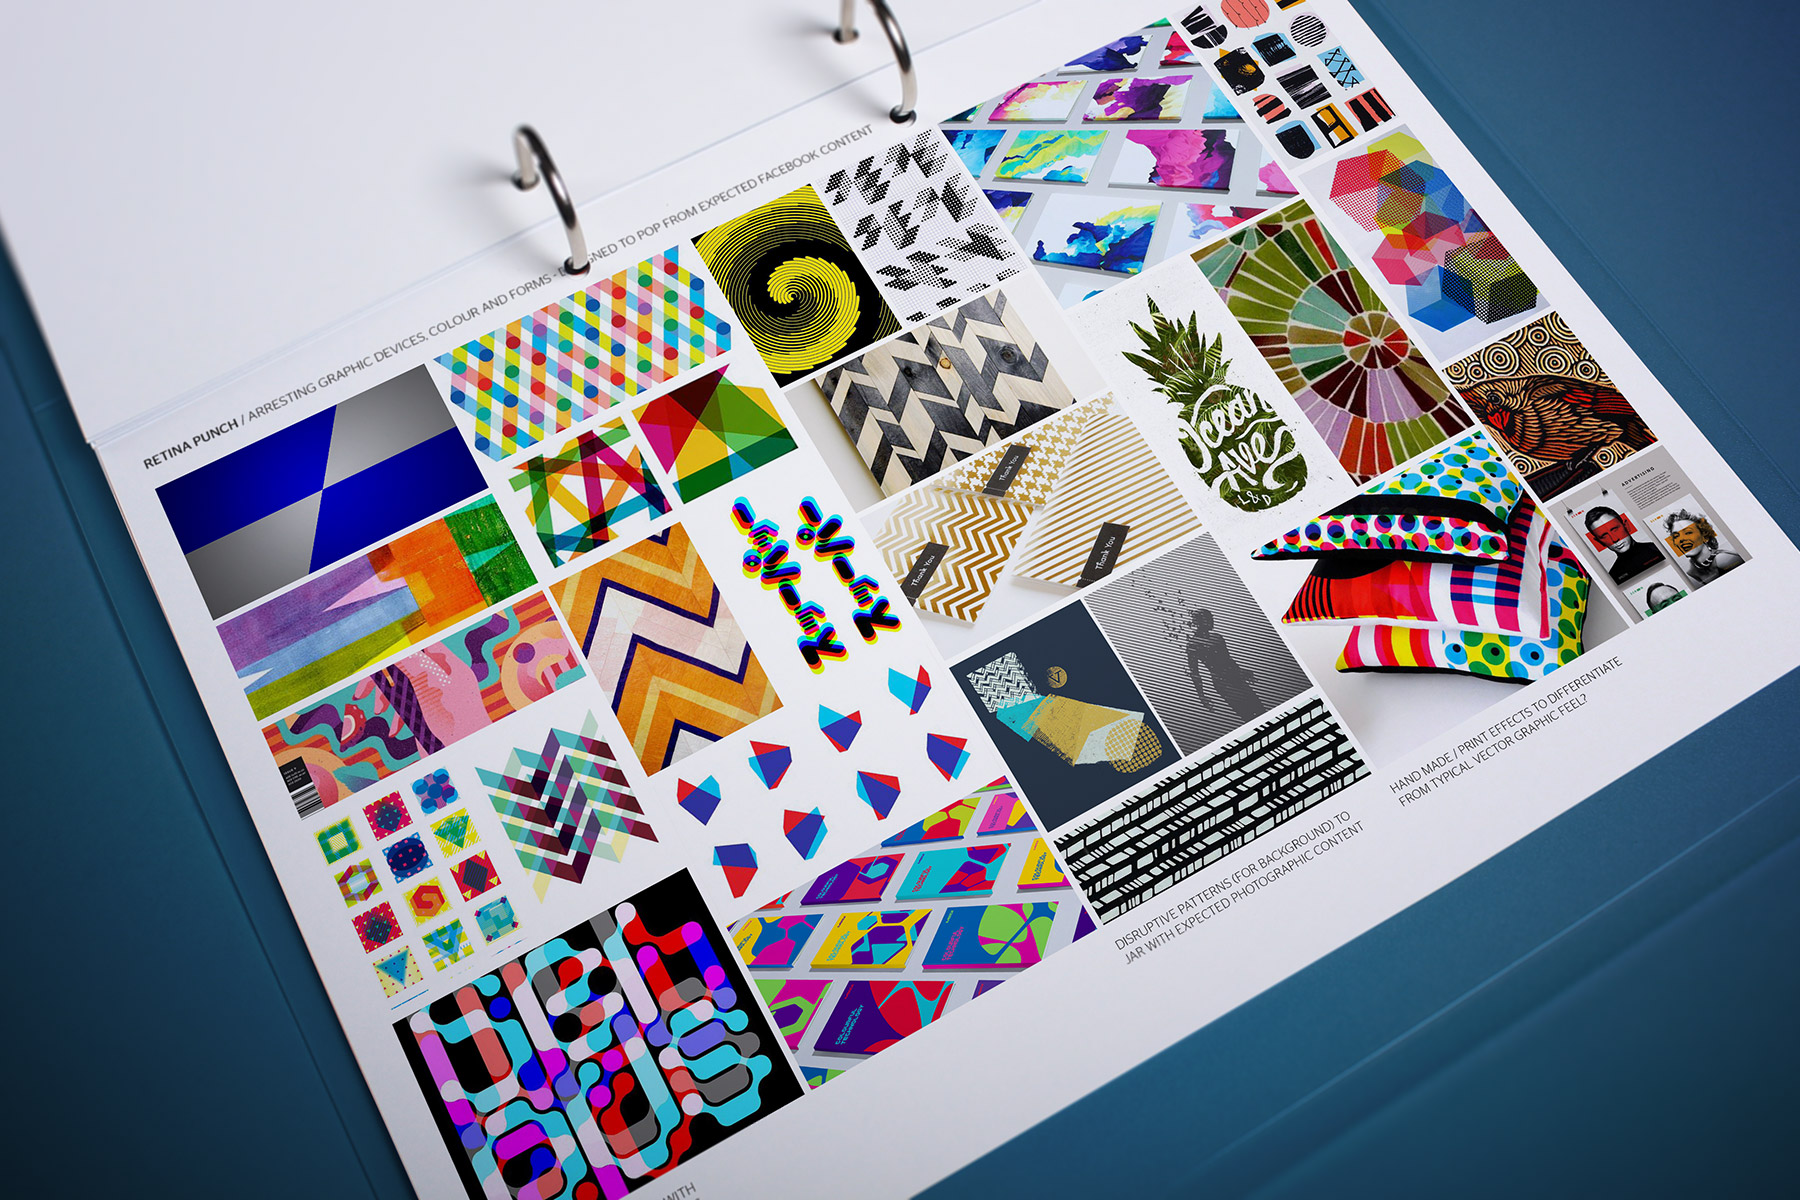 We studied various graphical mnemonics such as disruptive patterning, distortion, print effects and colour modelling. All with the deliberate purpose of stimulating the audience's subconscious mind.